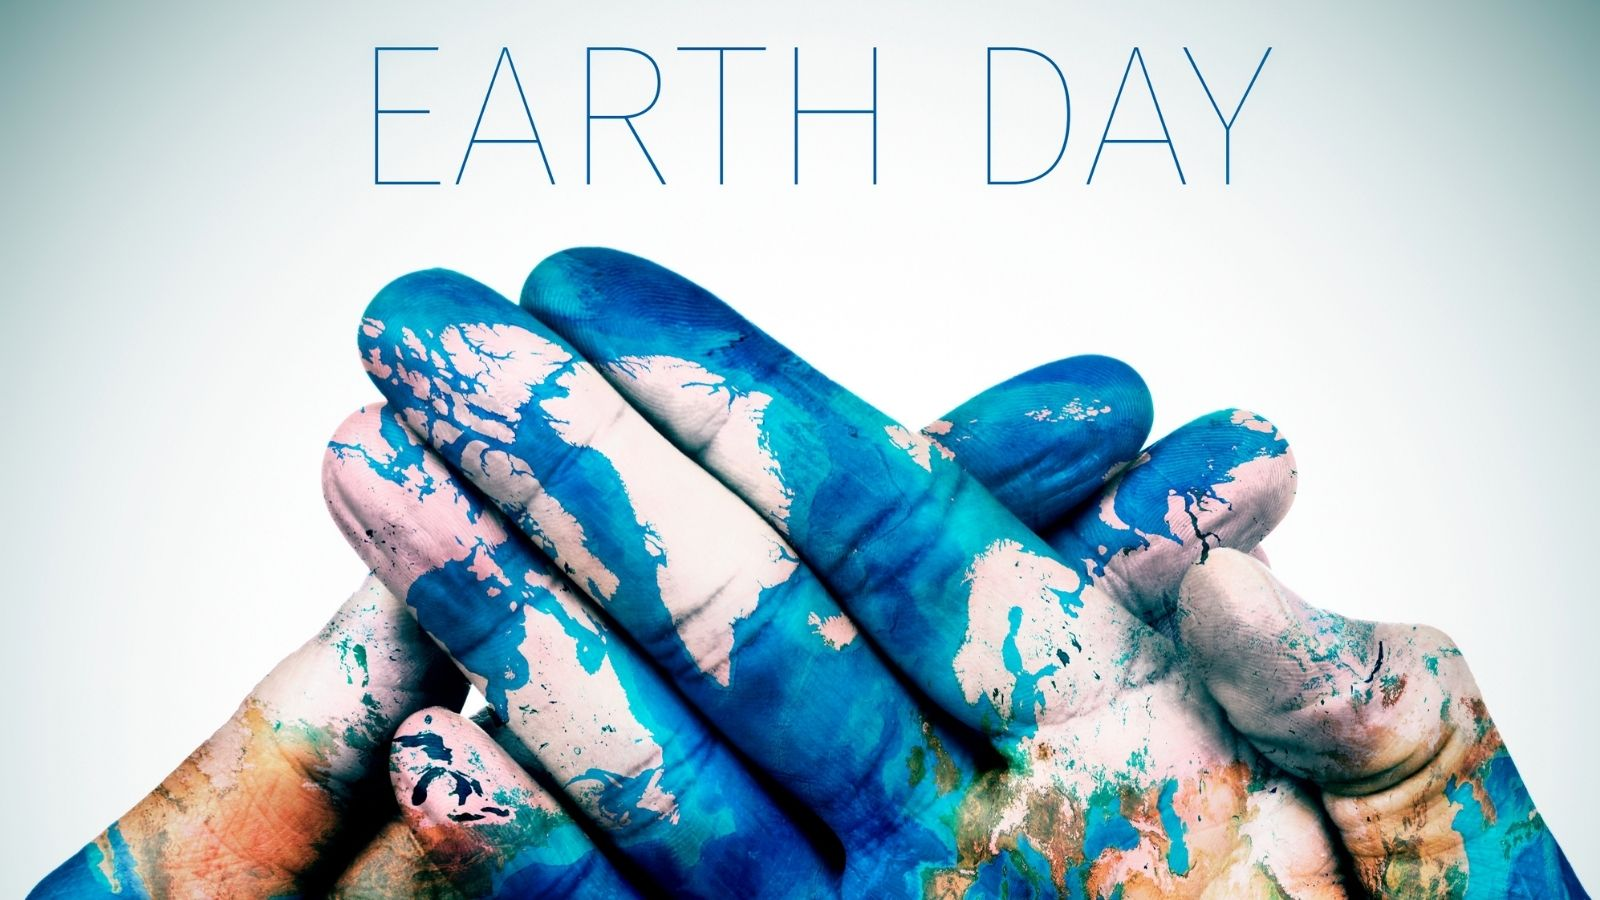 April MeetGreenChat - In Honor of Earth Day